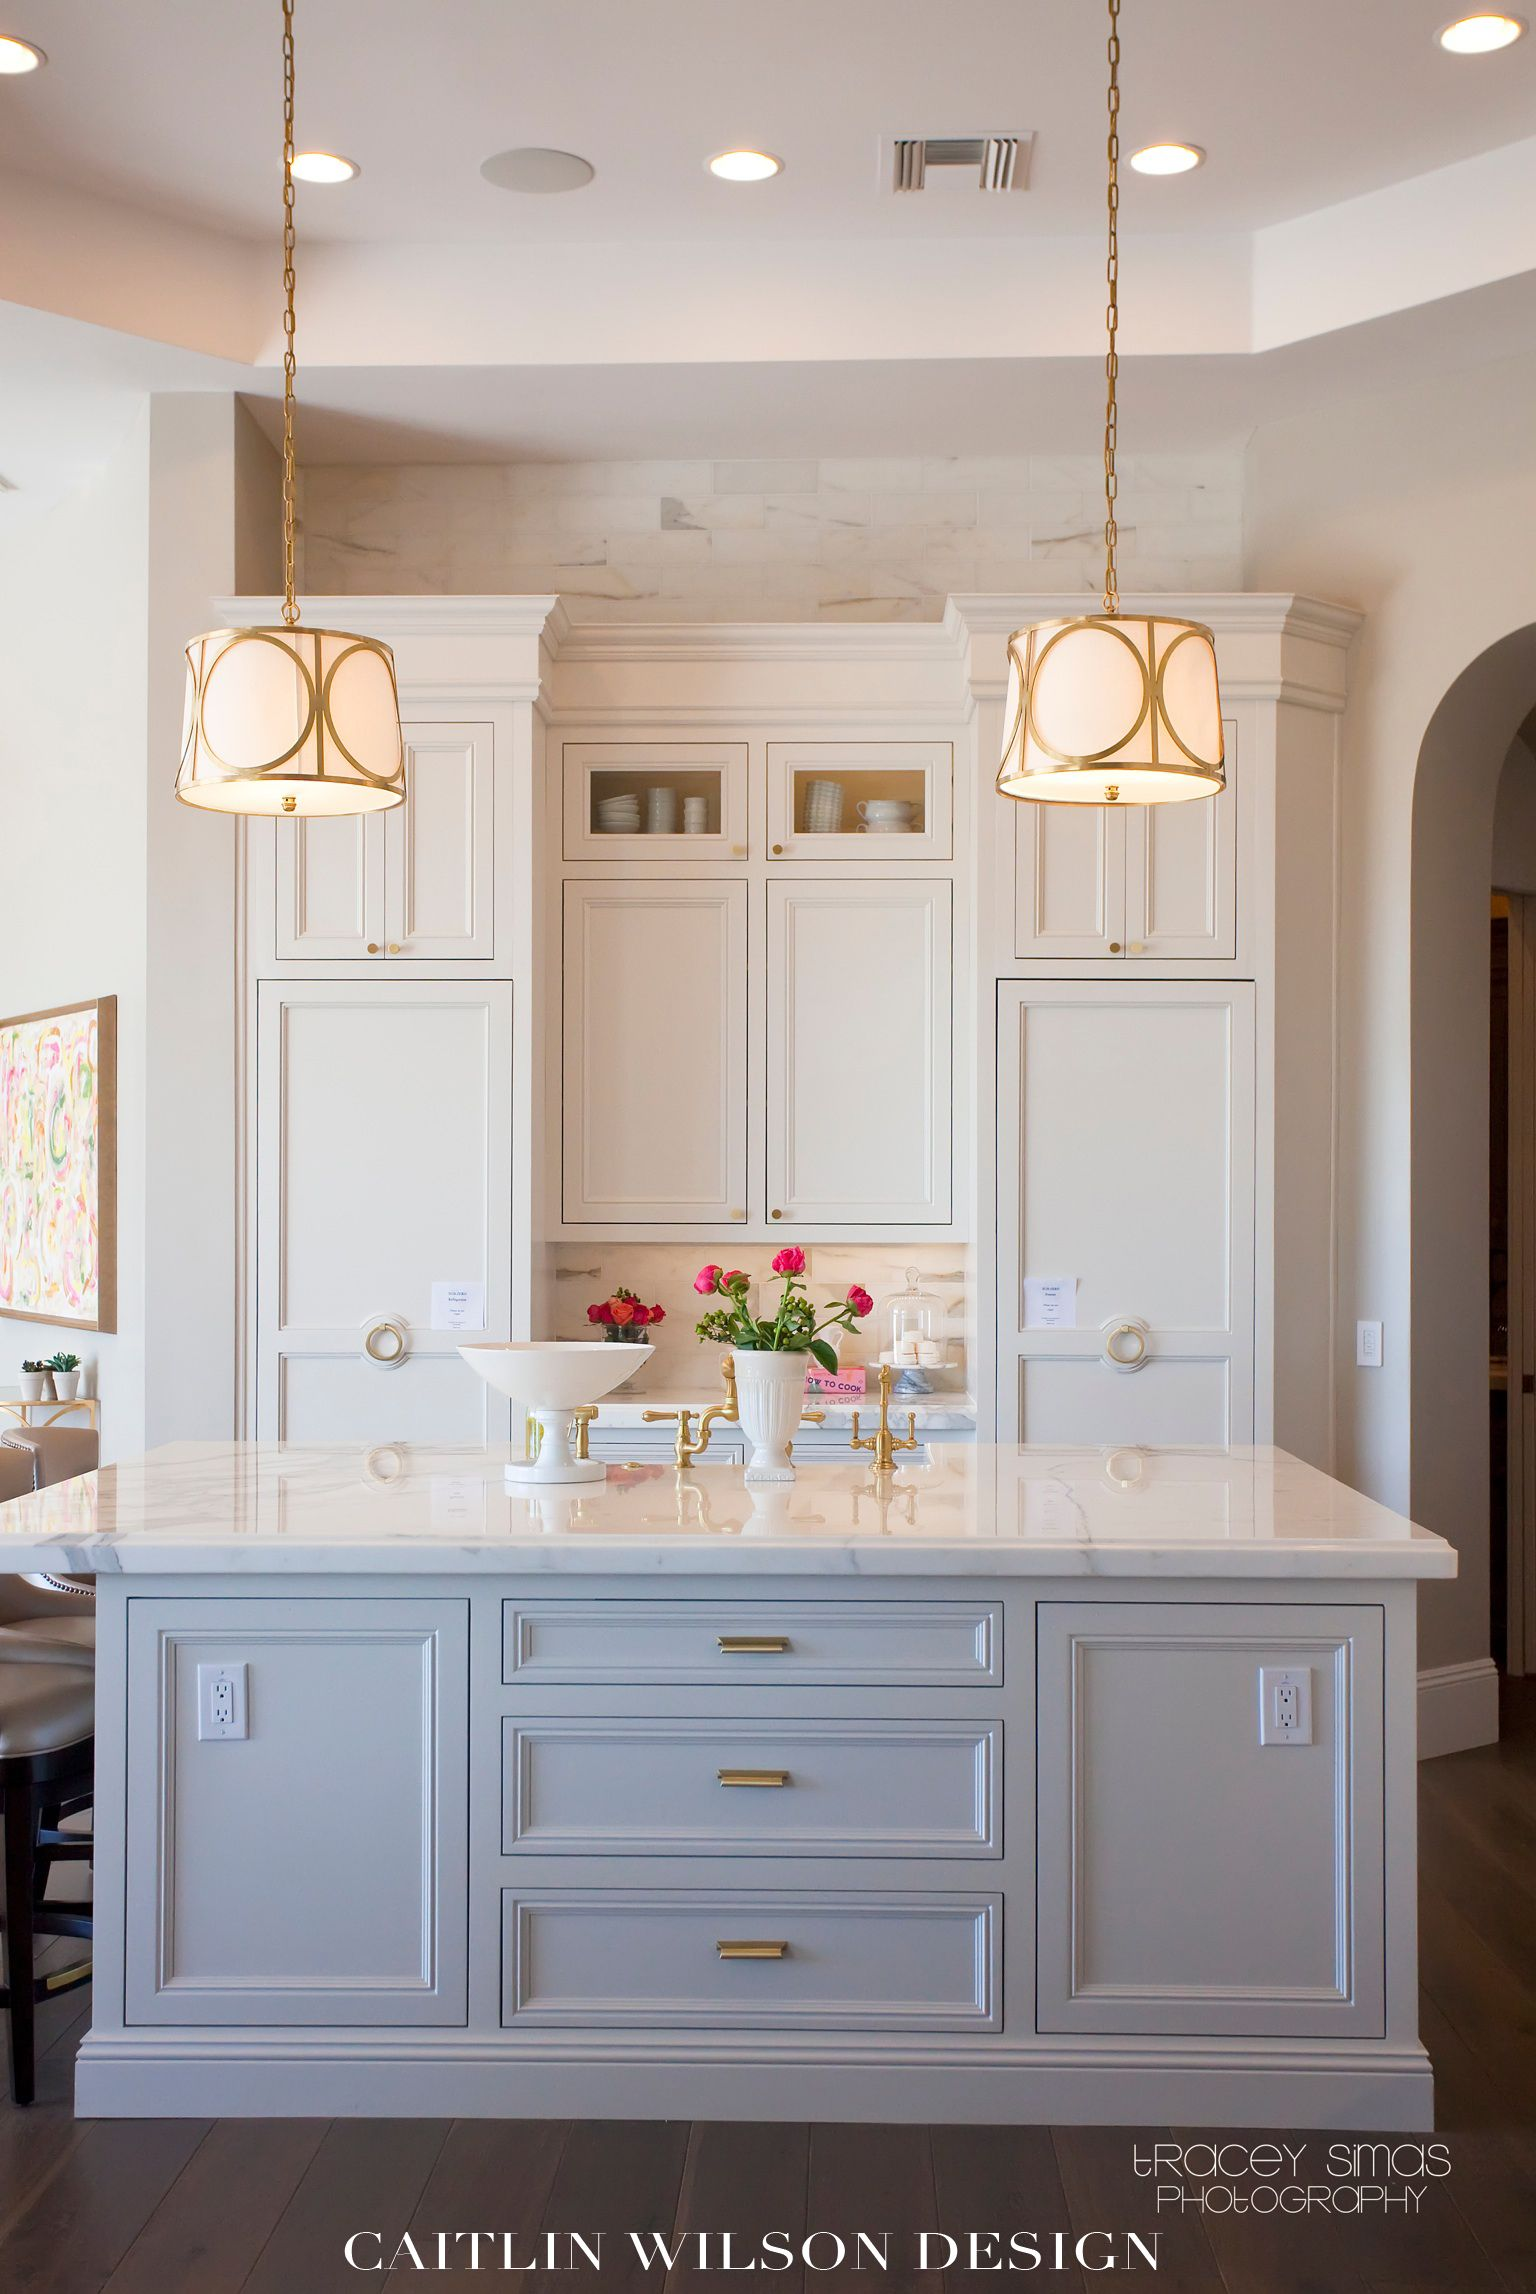 Best Pretty Kitchen Like The Gold Hardware And The Cabinets 400 x 300